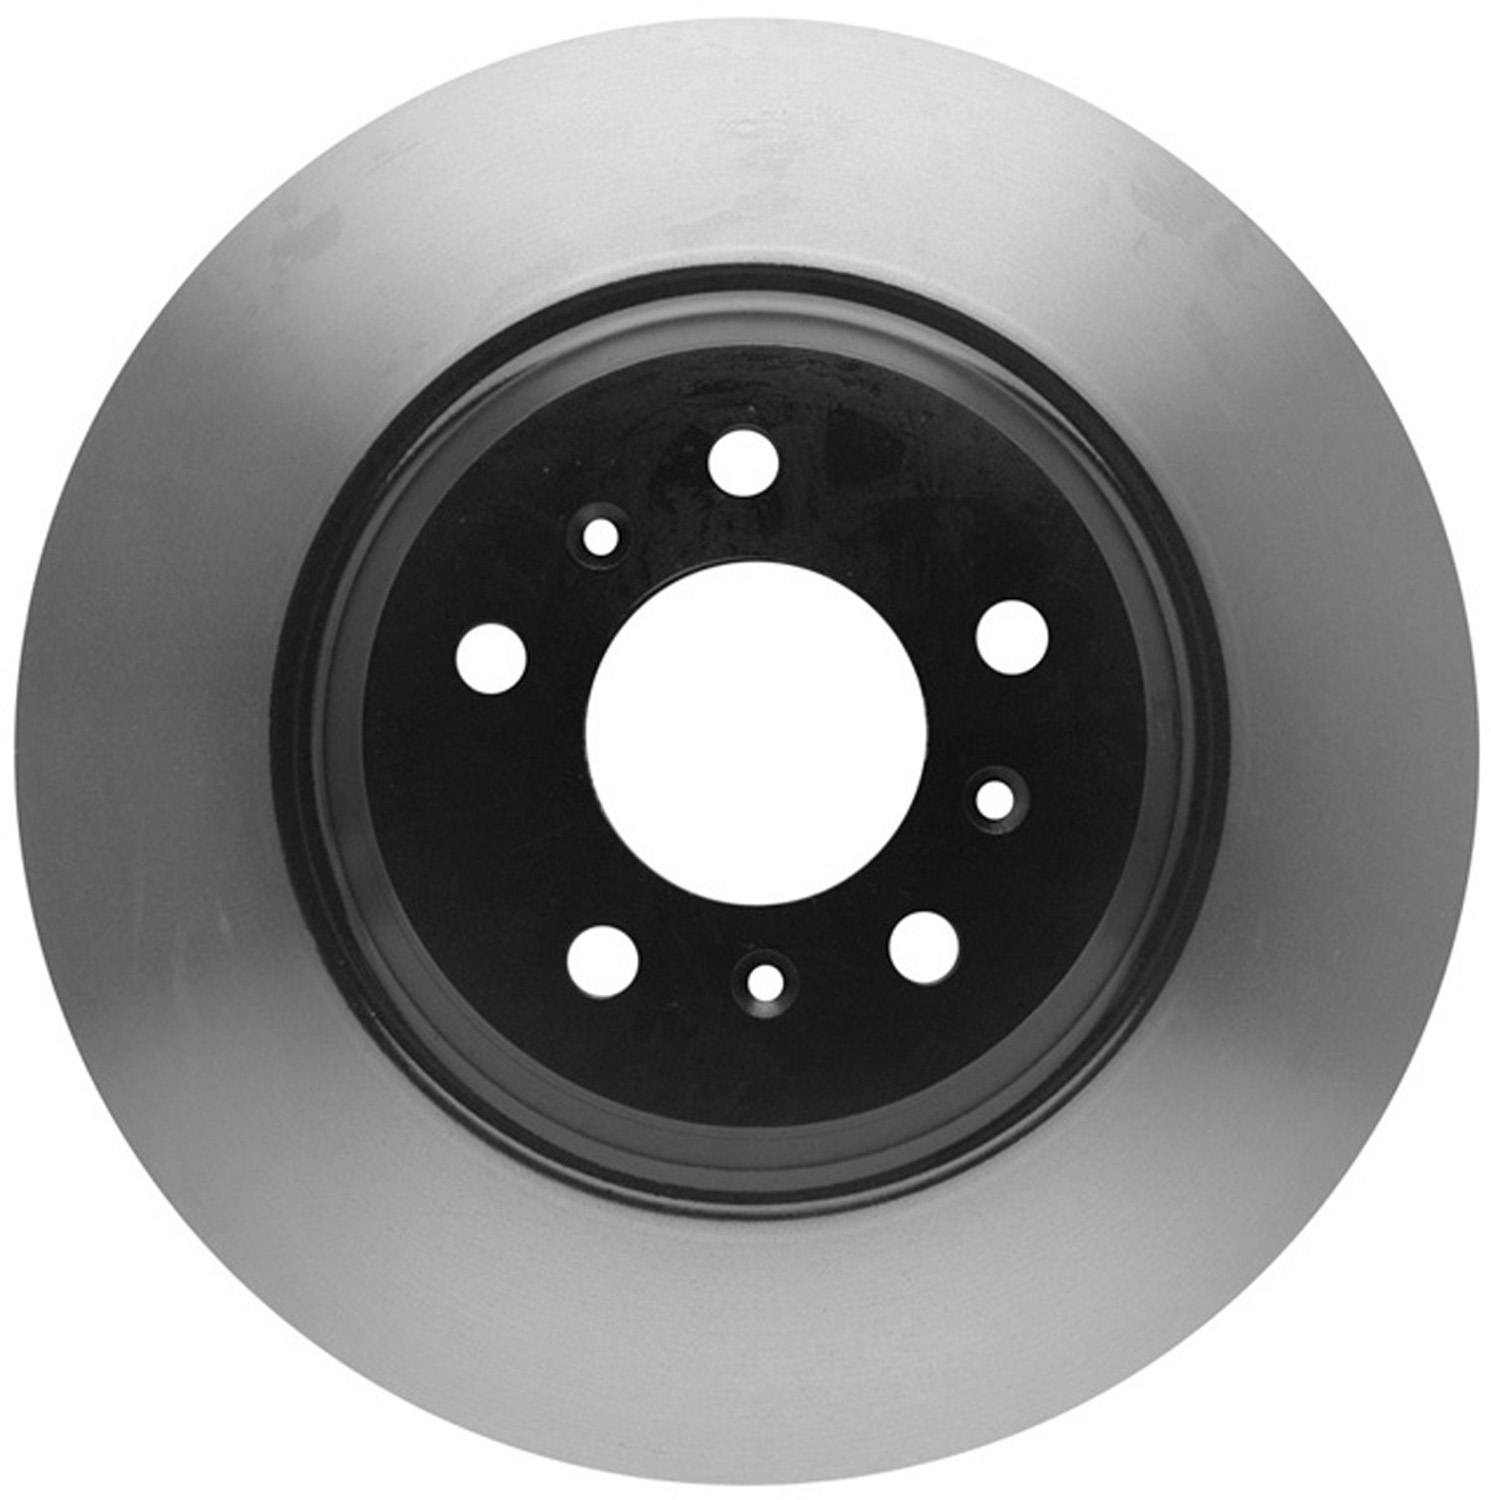 ACDELCO PROFESSIONAL BRAKES - Disc Brake Rotor (Front) - ADU 18A2414